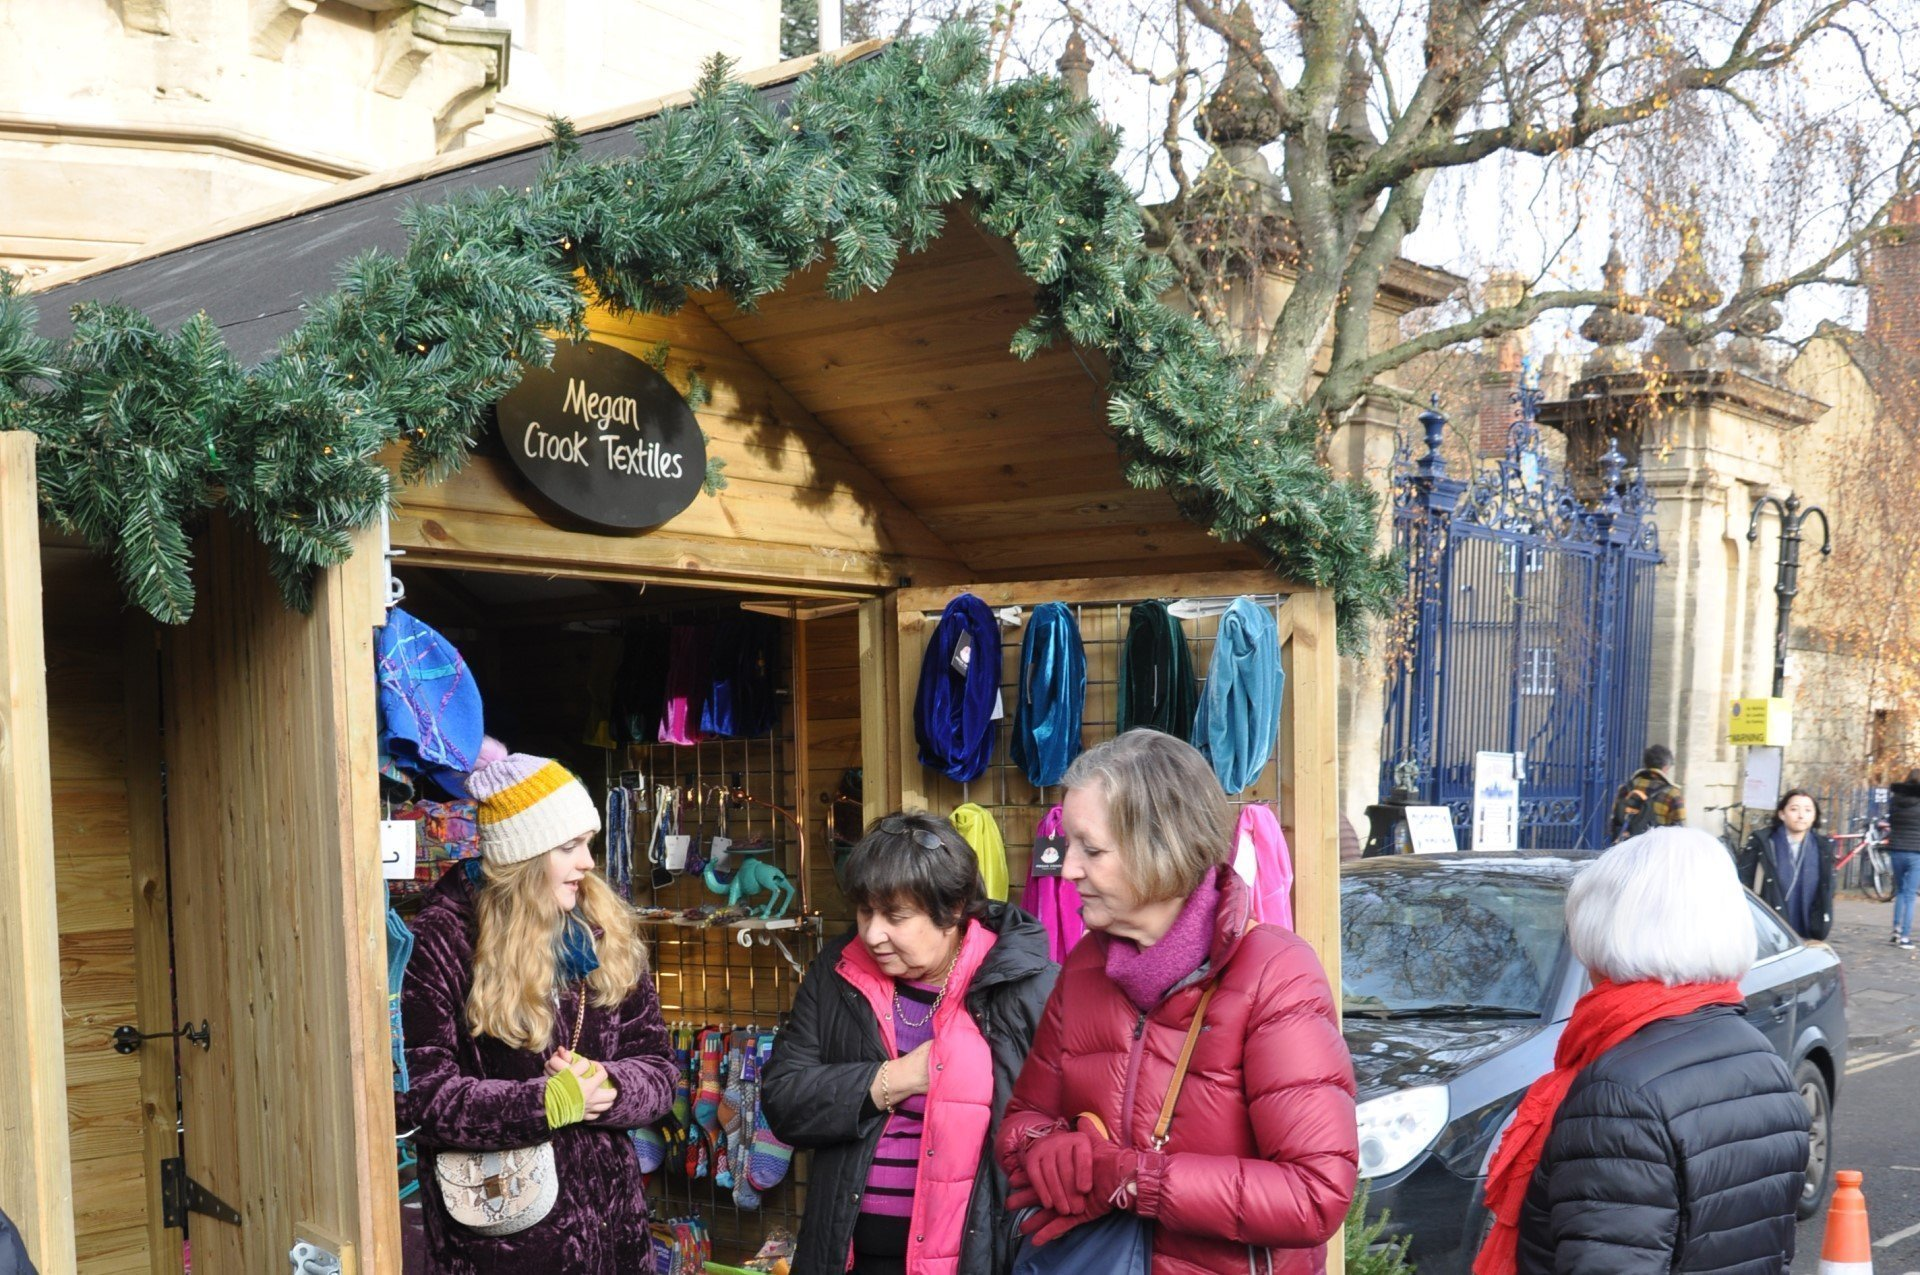 In Pictures: Oxford Christmas Market 2019